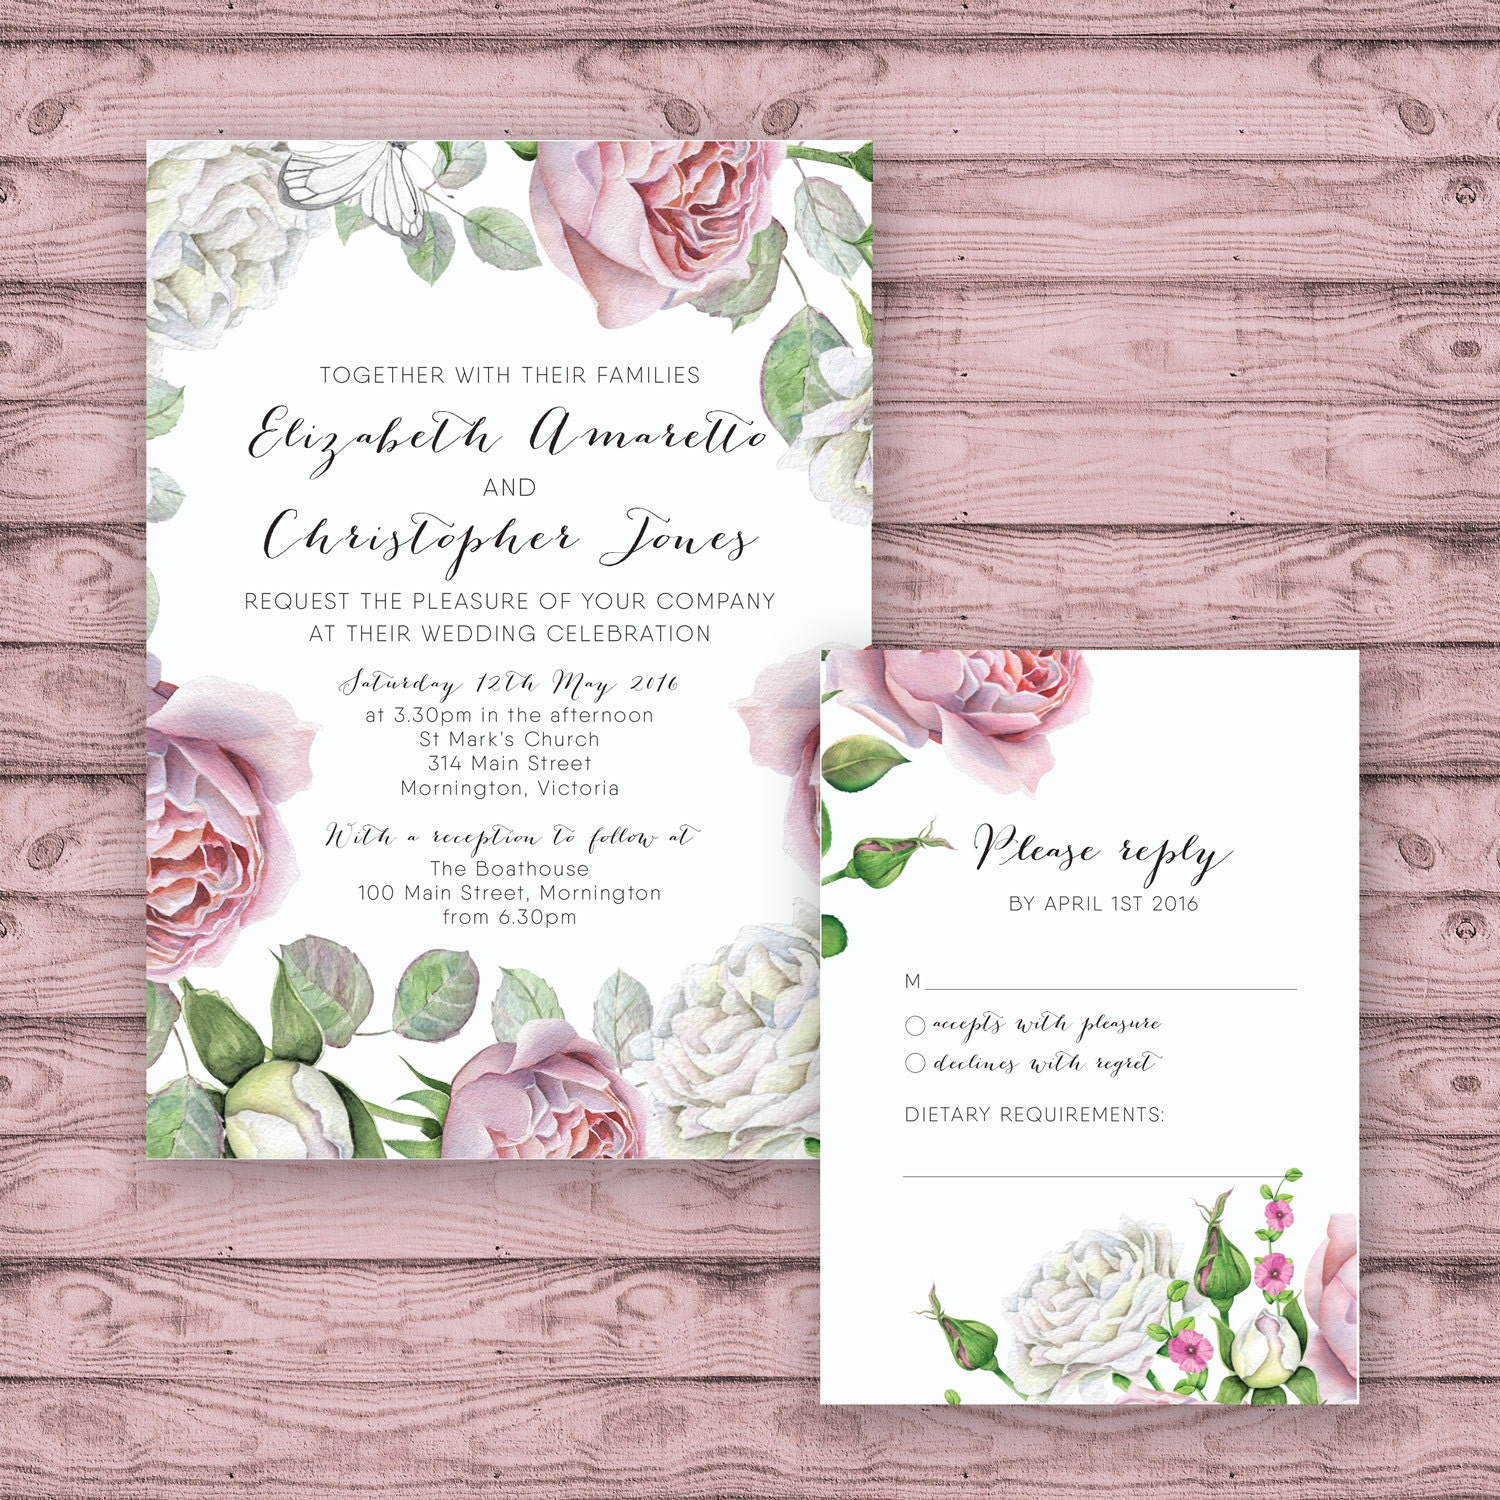 Floral Wedding Invitation Suite   Print At Home Files Or Printed Invitations    Pink White Roses Personalised Wedding Suite   Calligraphy